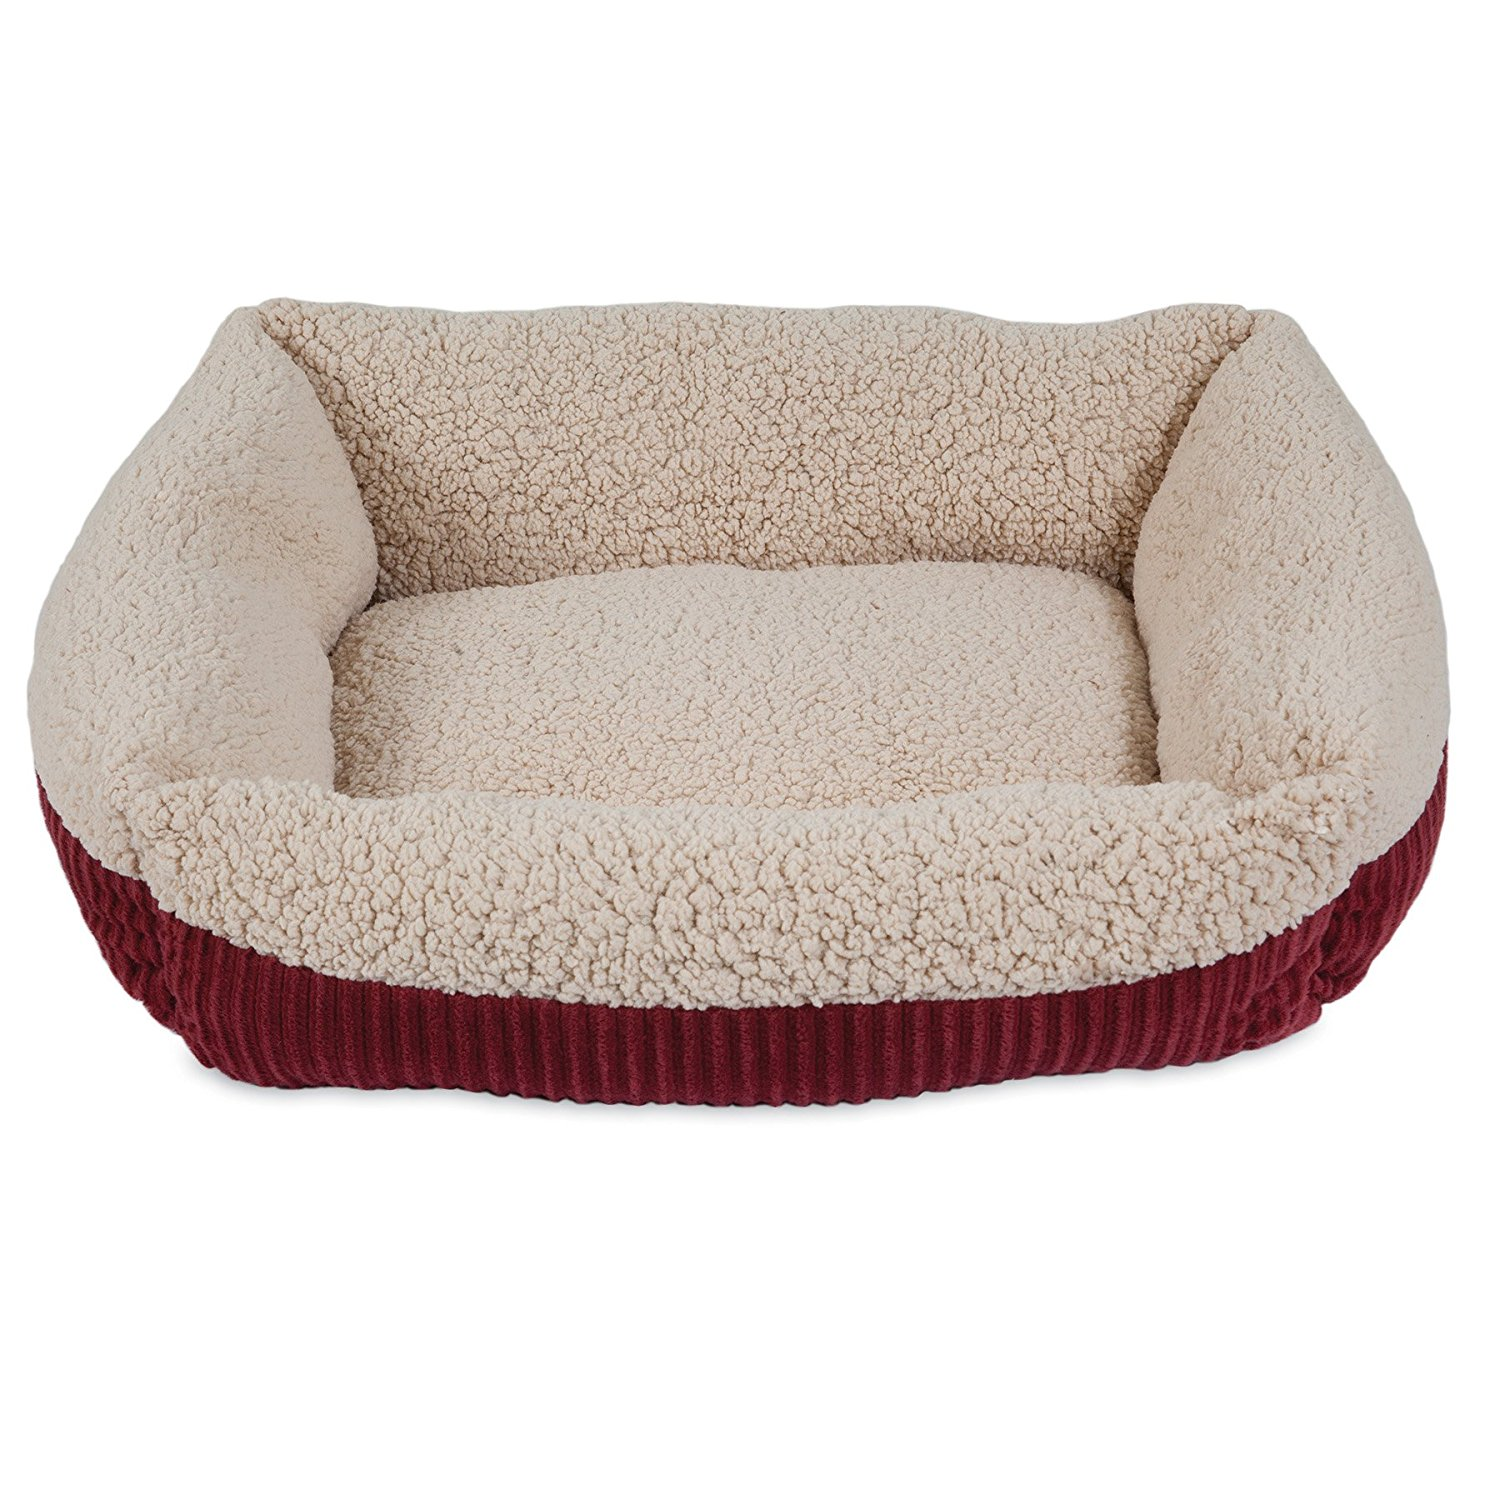 Self-warming dog bed